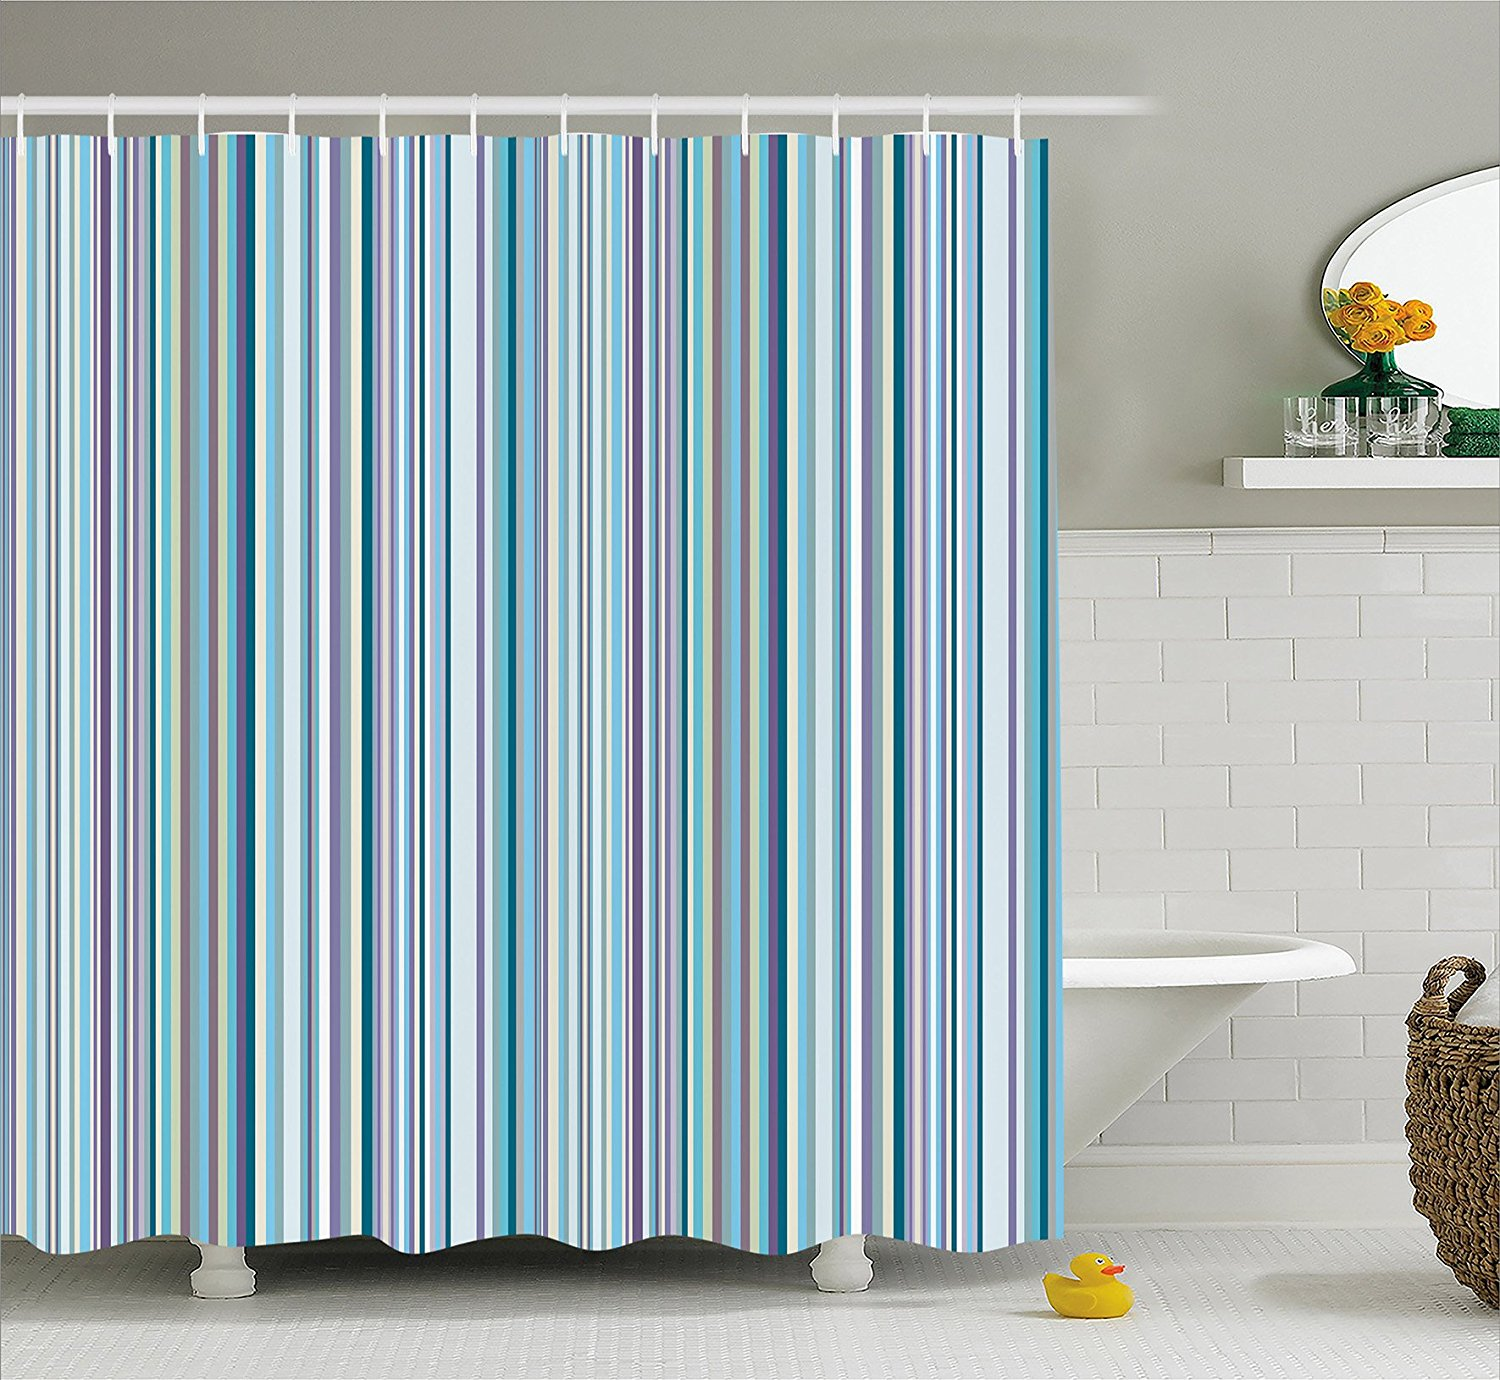 Us 14 17 38 Off Striped Shower Curtain Set Blue Purple Teal Aqua Lavender Colored Vertical Stripes Geometric Abstract Vintage Fabric Bath Decor In